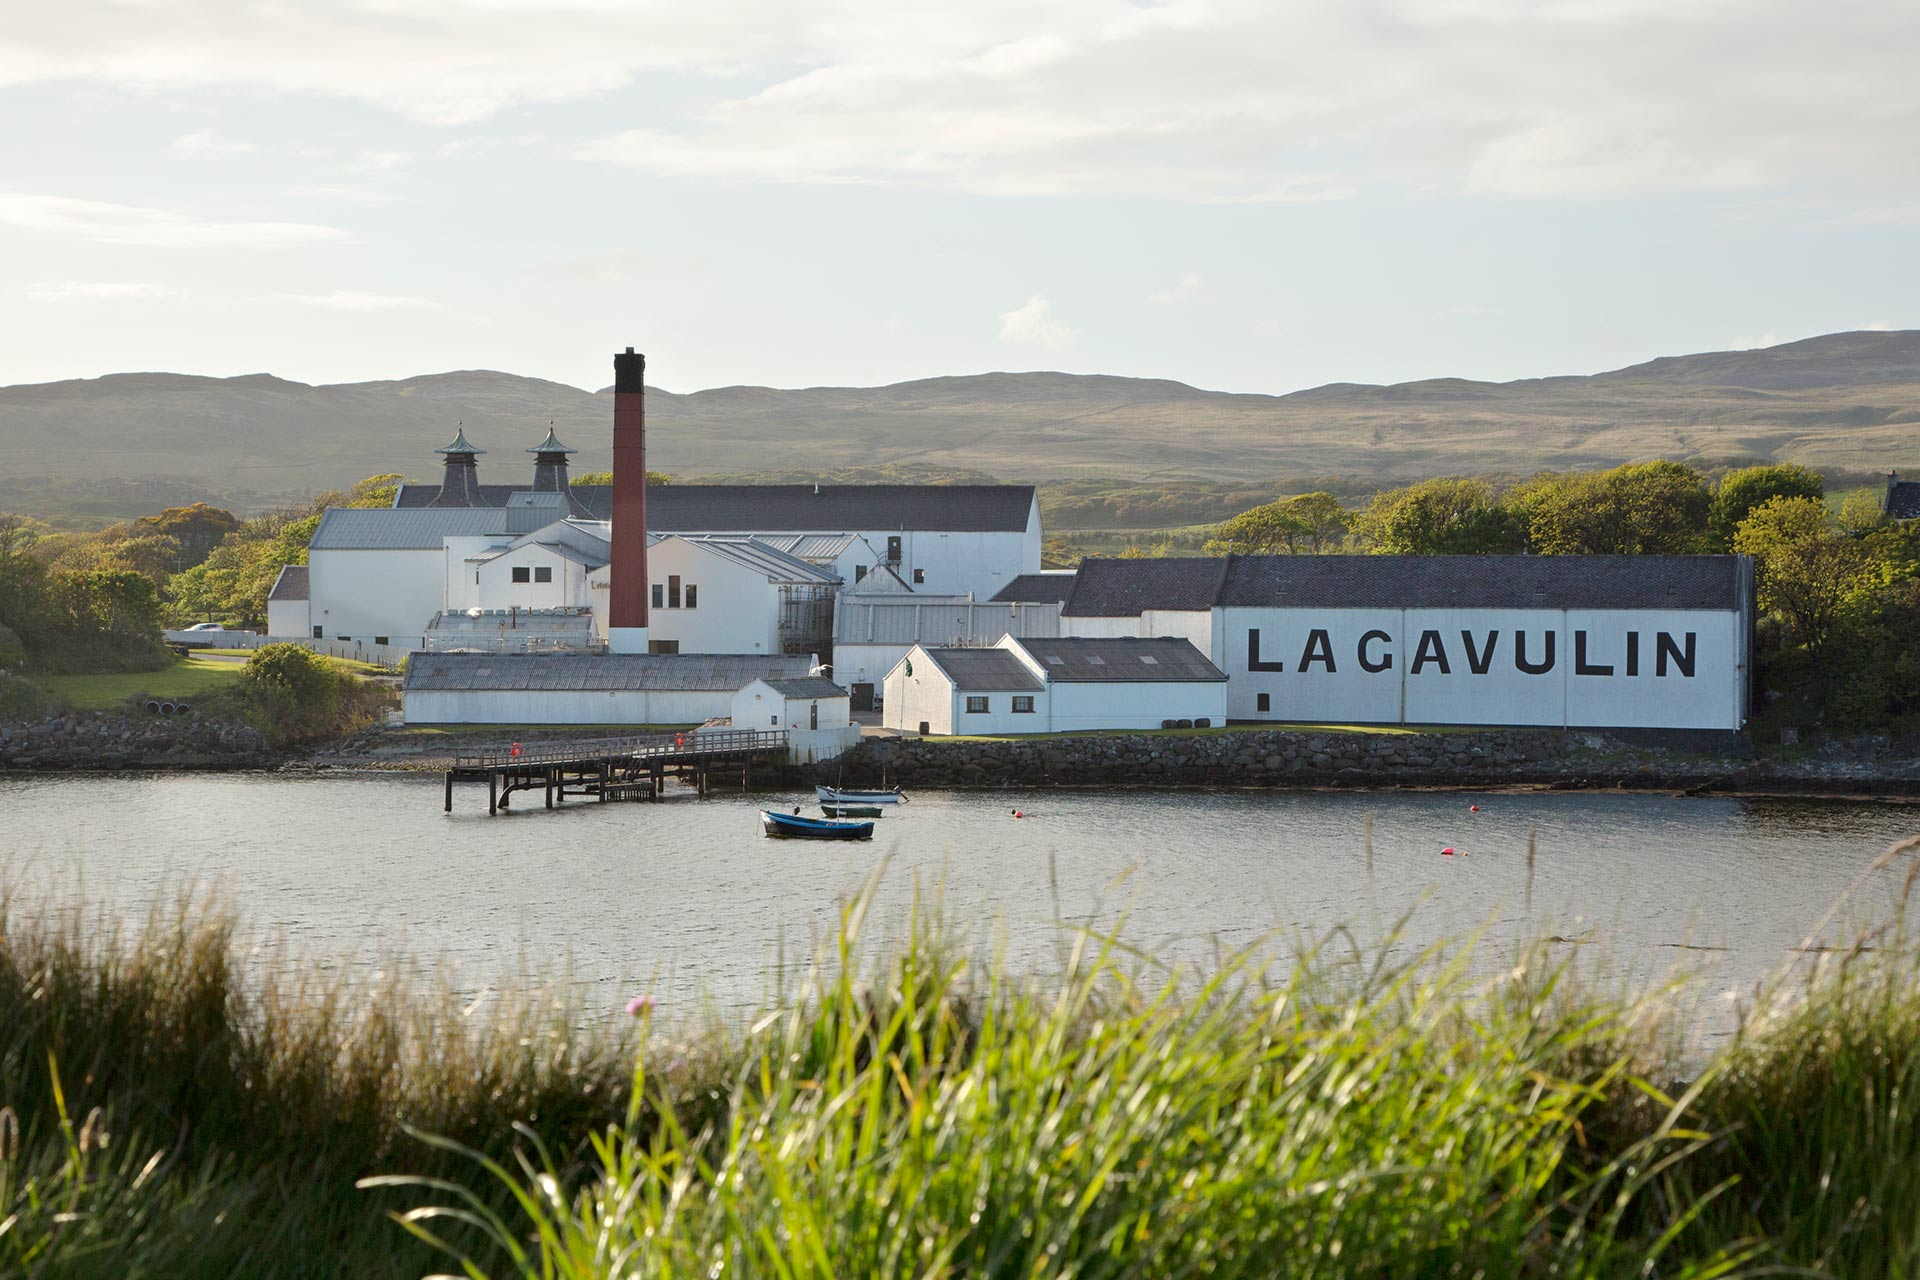 The Lagavulin Distillery on the Isle of Islay.